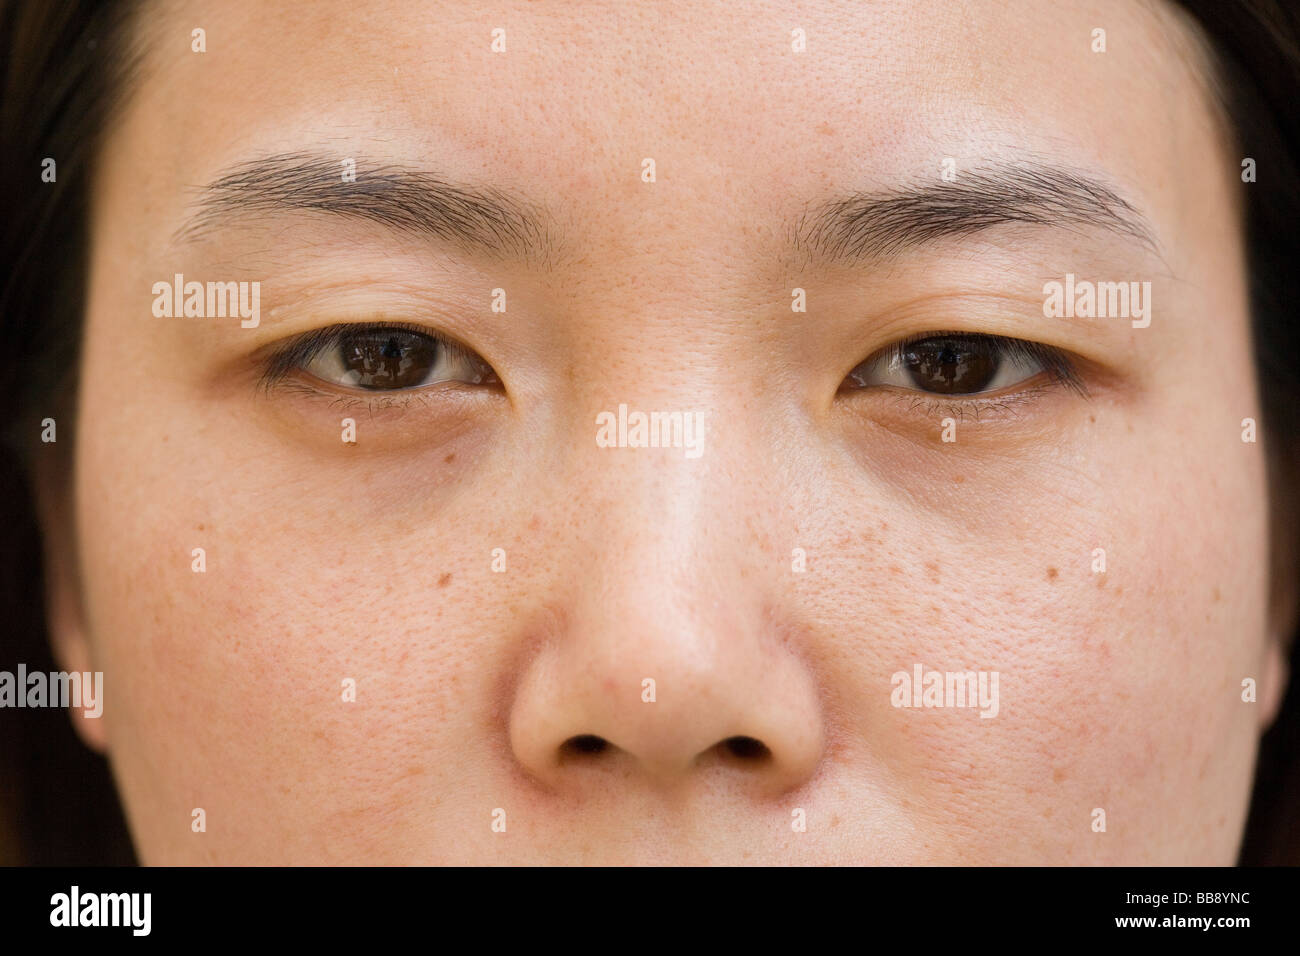 Zhao Yan, 27,  a nurse,  is about to have a plastic surgery operation to give her double eyelids - Stock Image